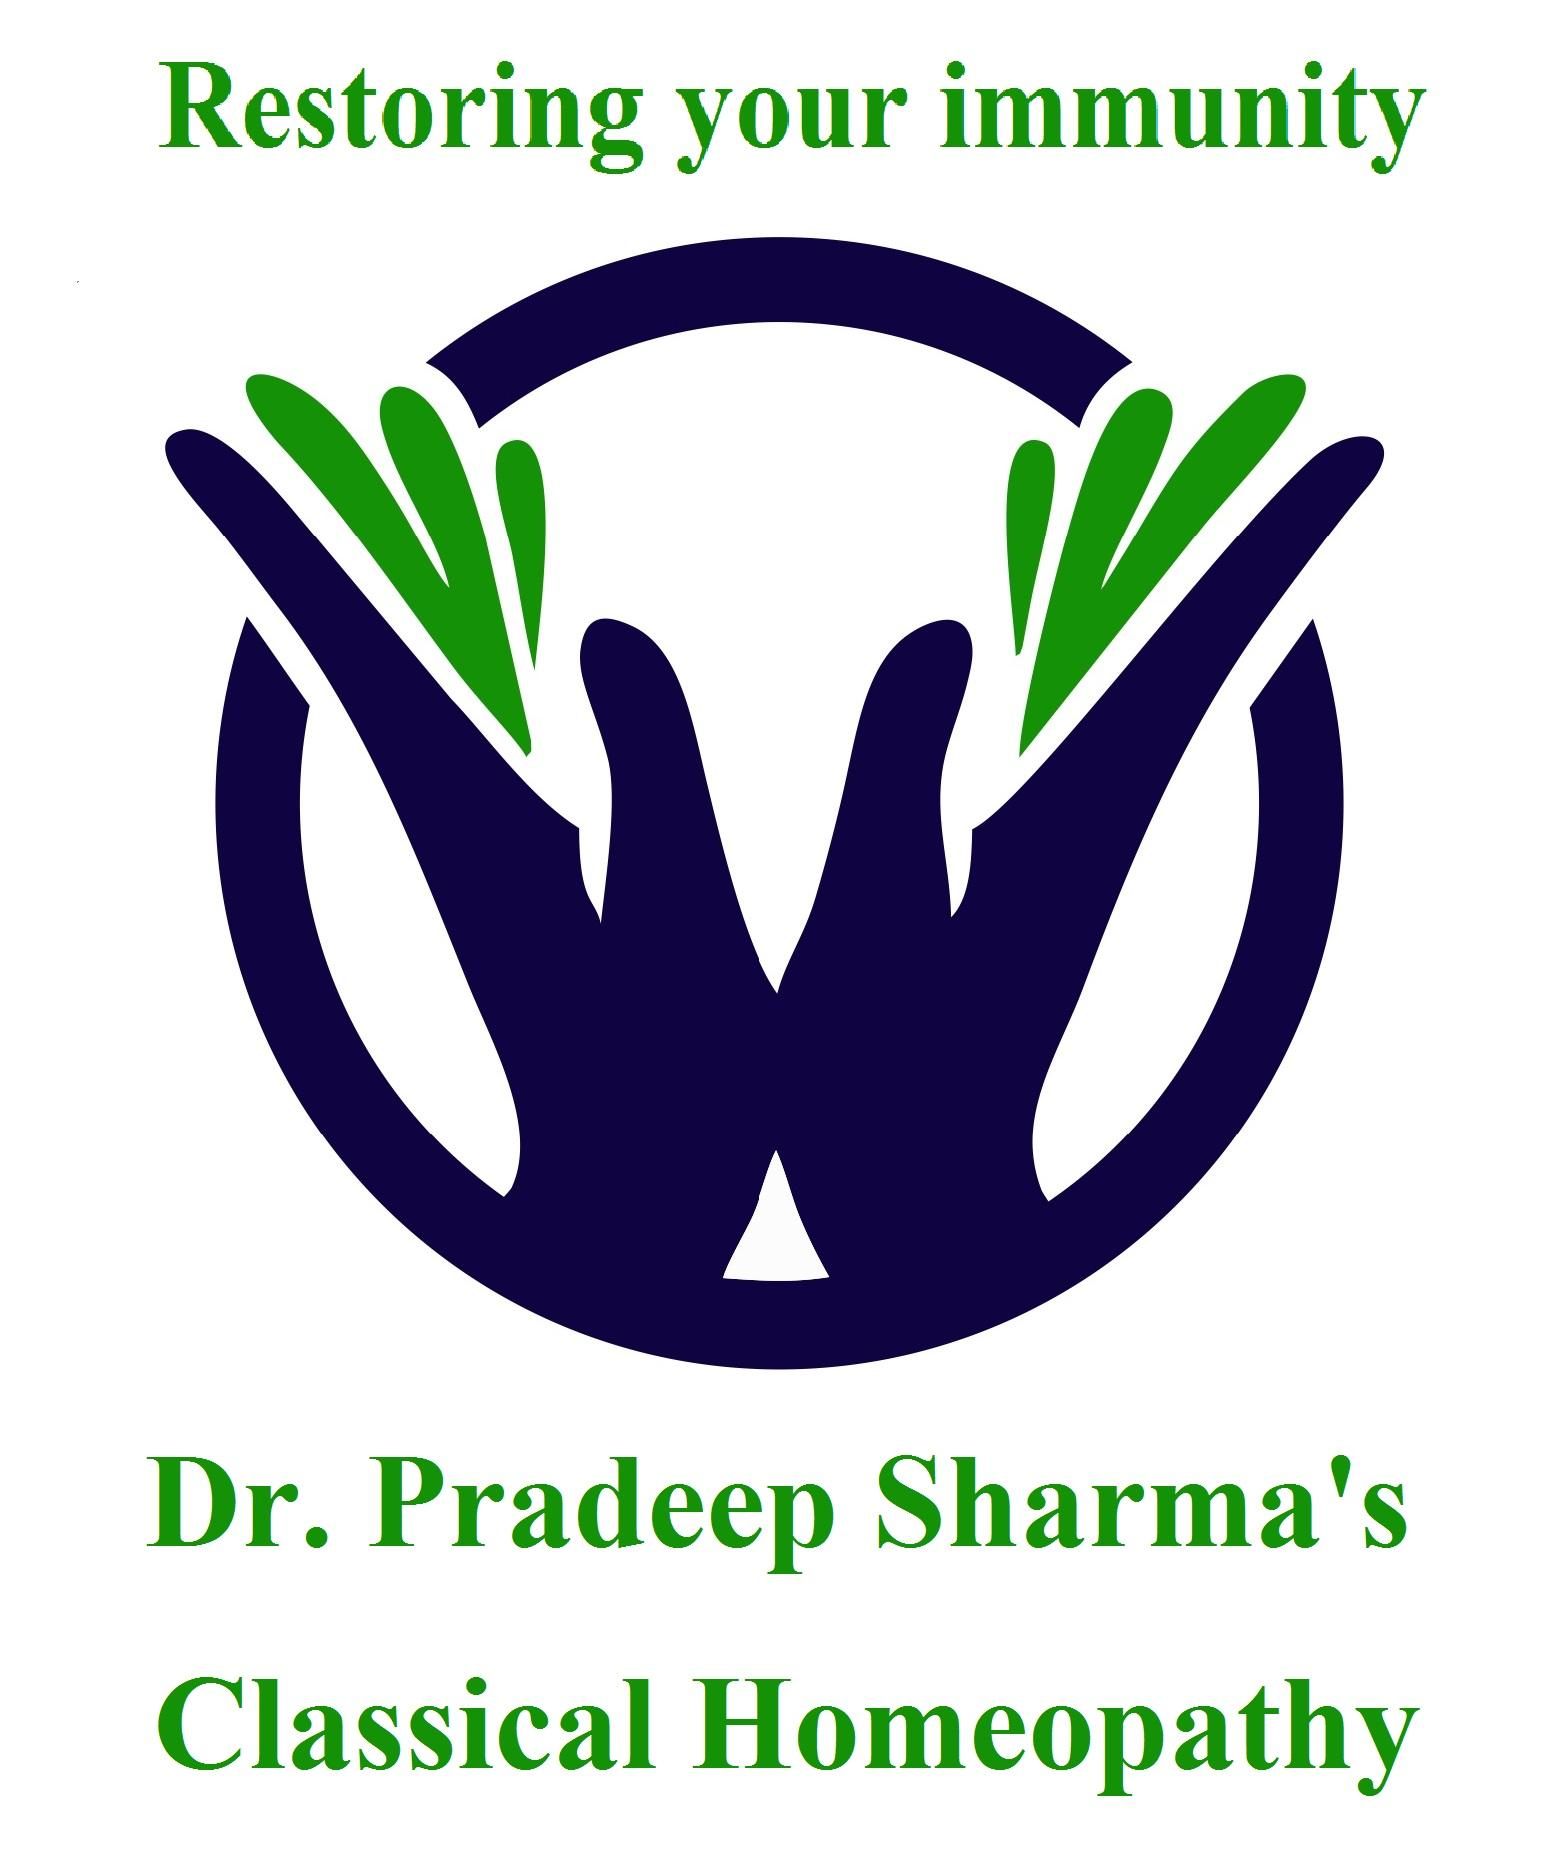 Dr. Pradeep Sharma's Homeopathic Clinic